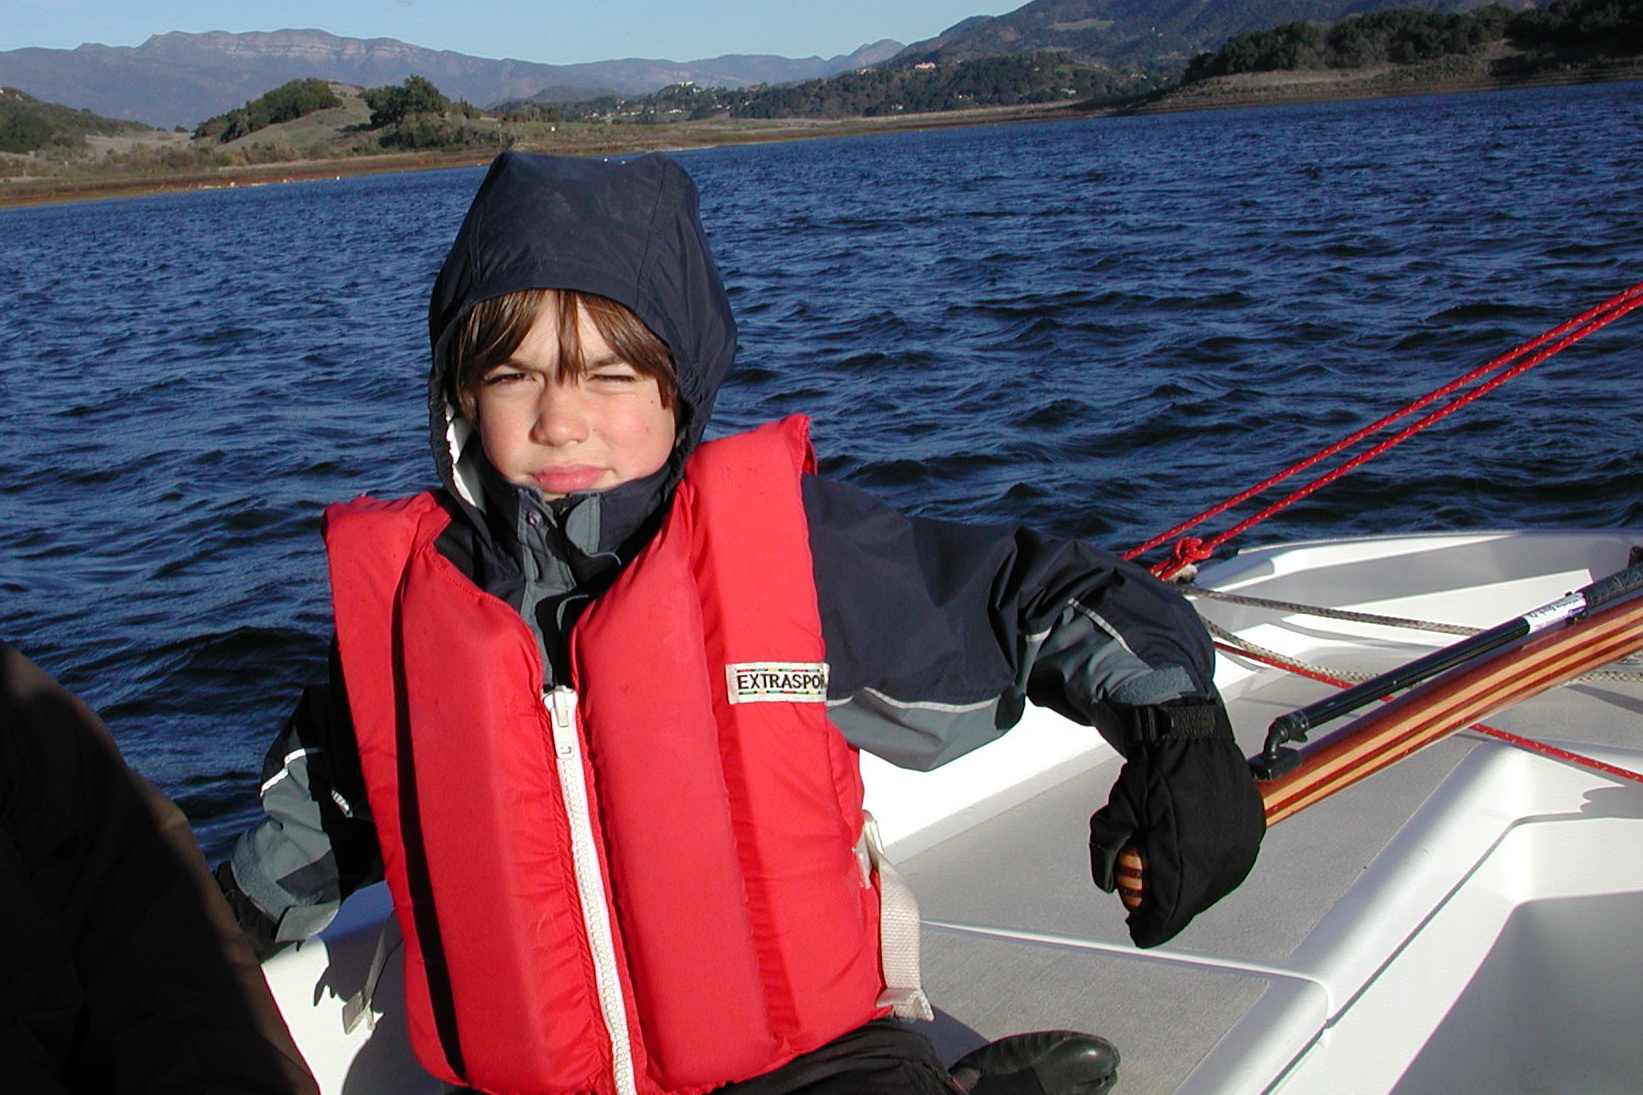 Dane at the helm on the Cal 20 on Lake Casitas